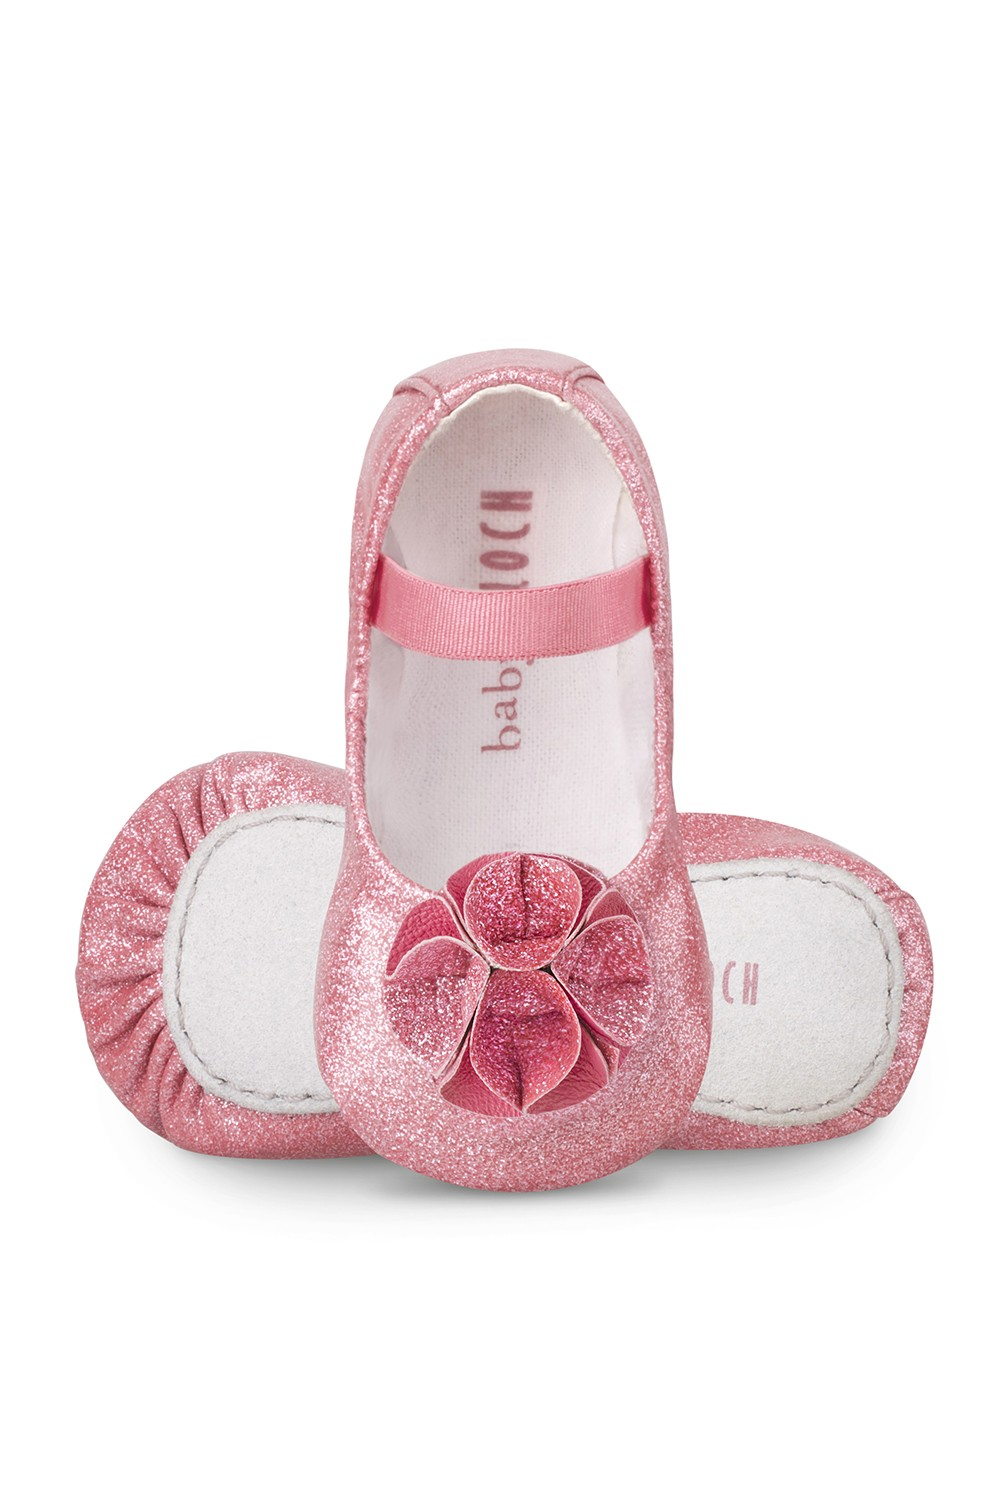 Anais - Baby Babies Fashion Shoes